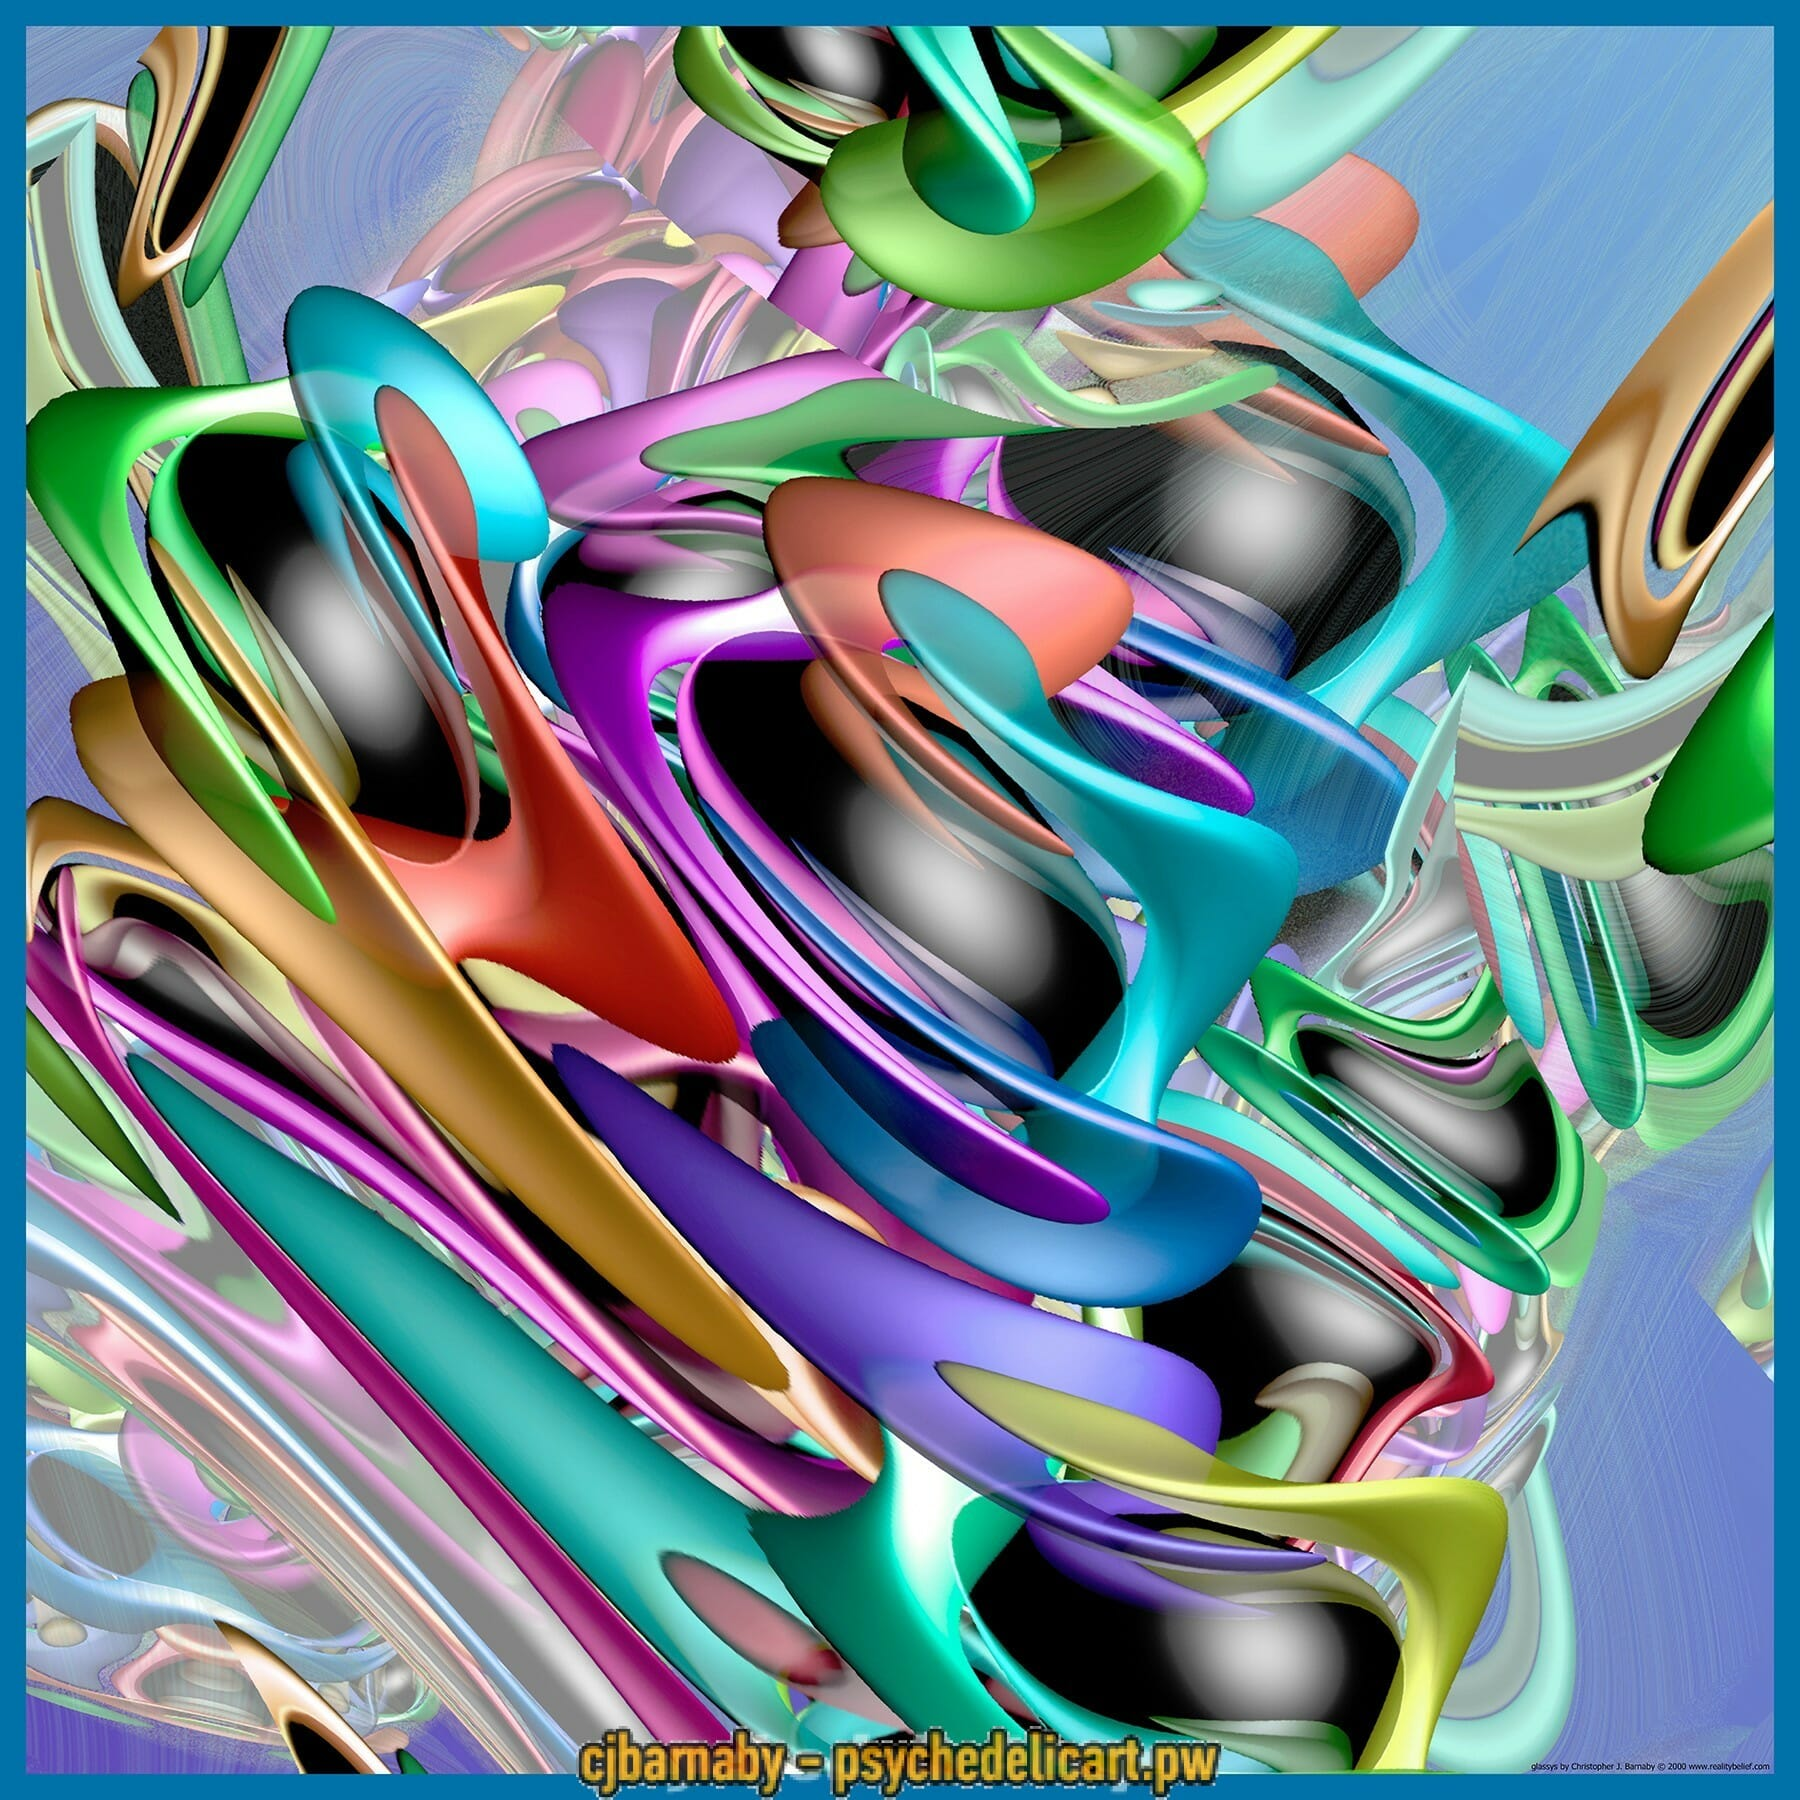 psychedelic art http://psychedelicart.pw/wp-content/uploads/Glassys.jpg